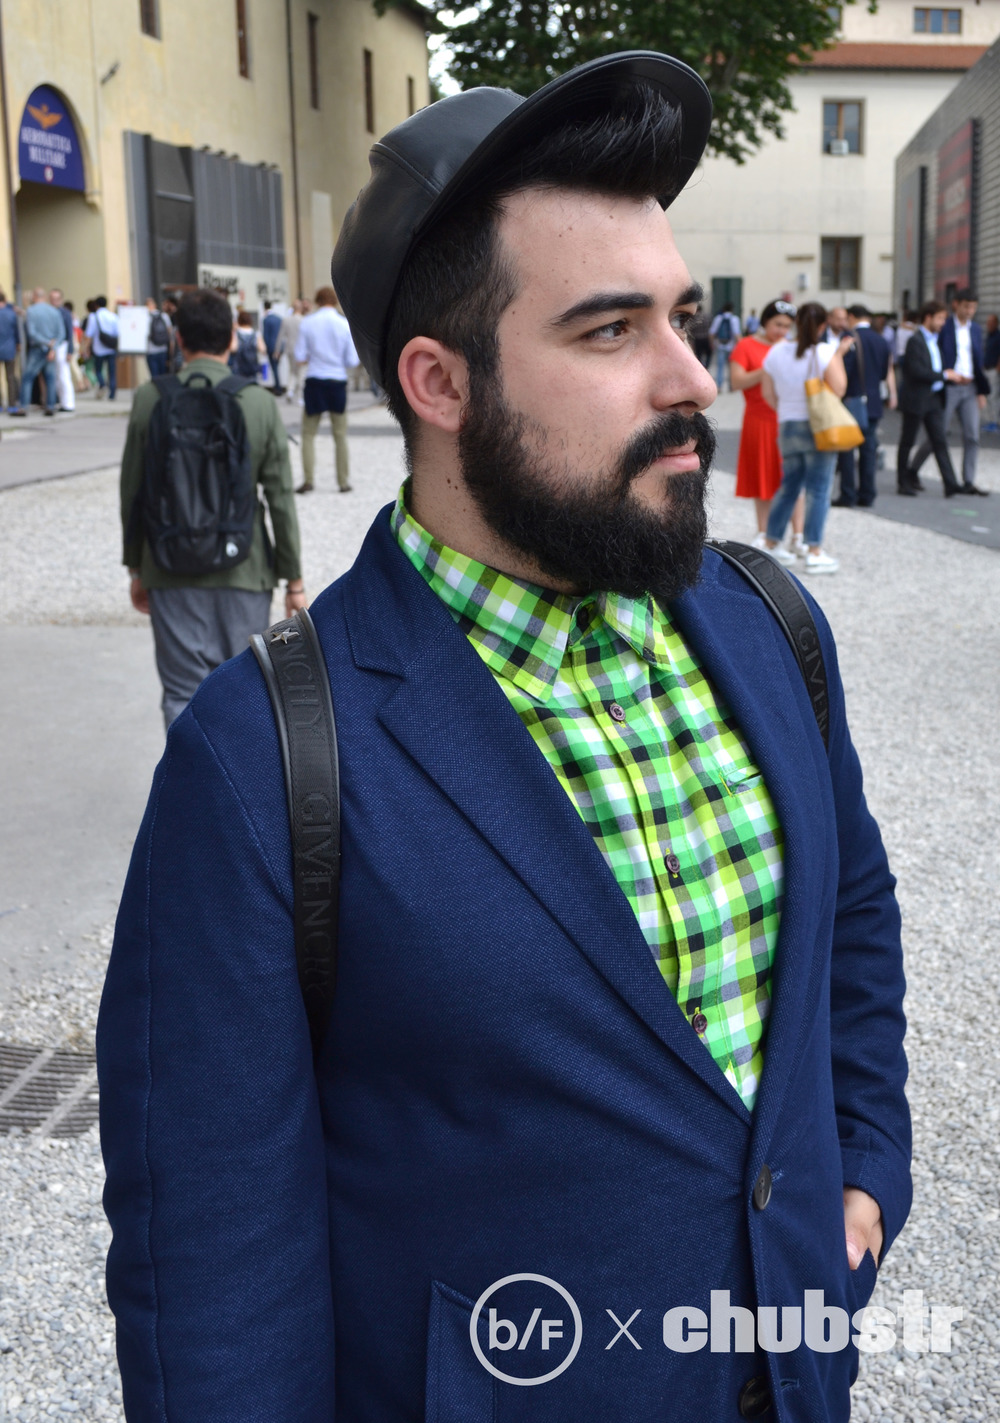 BF032_PittiUomo88_FB_9.jpg